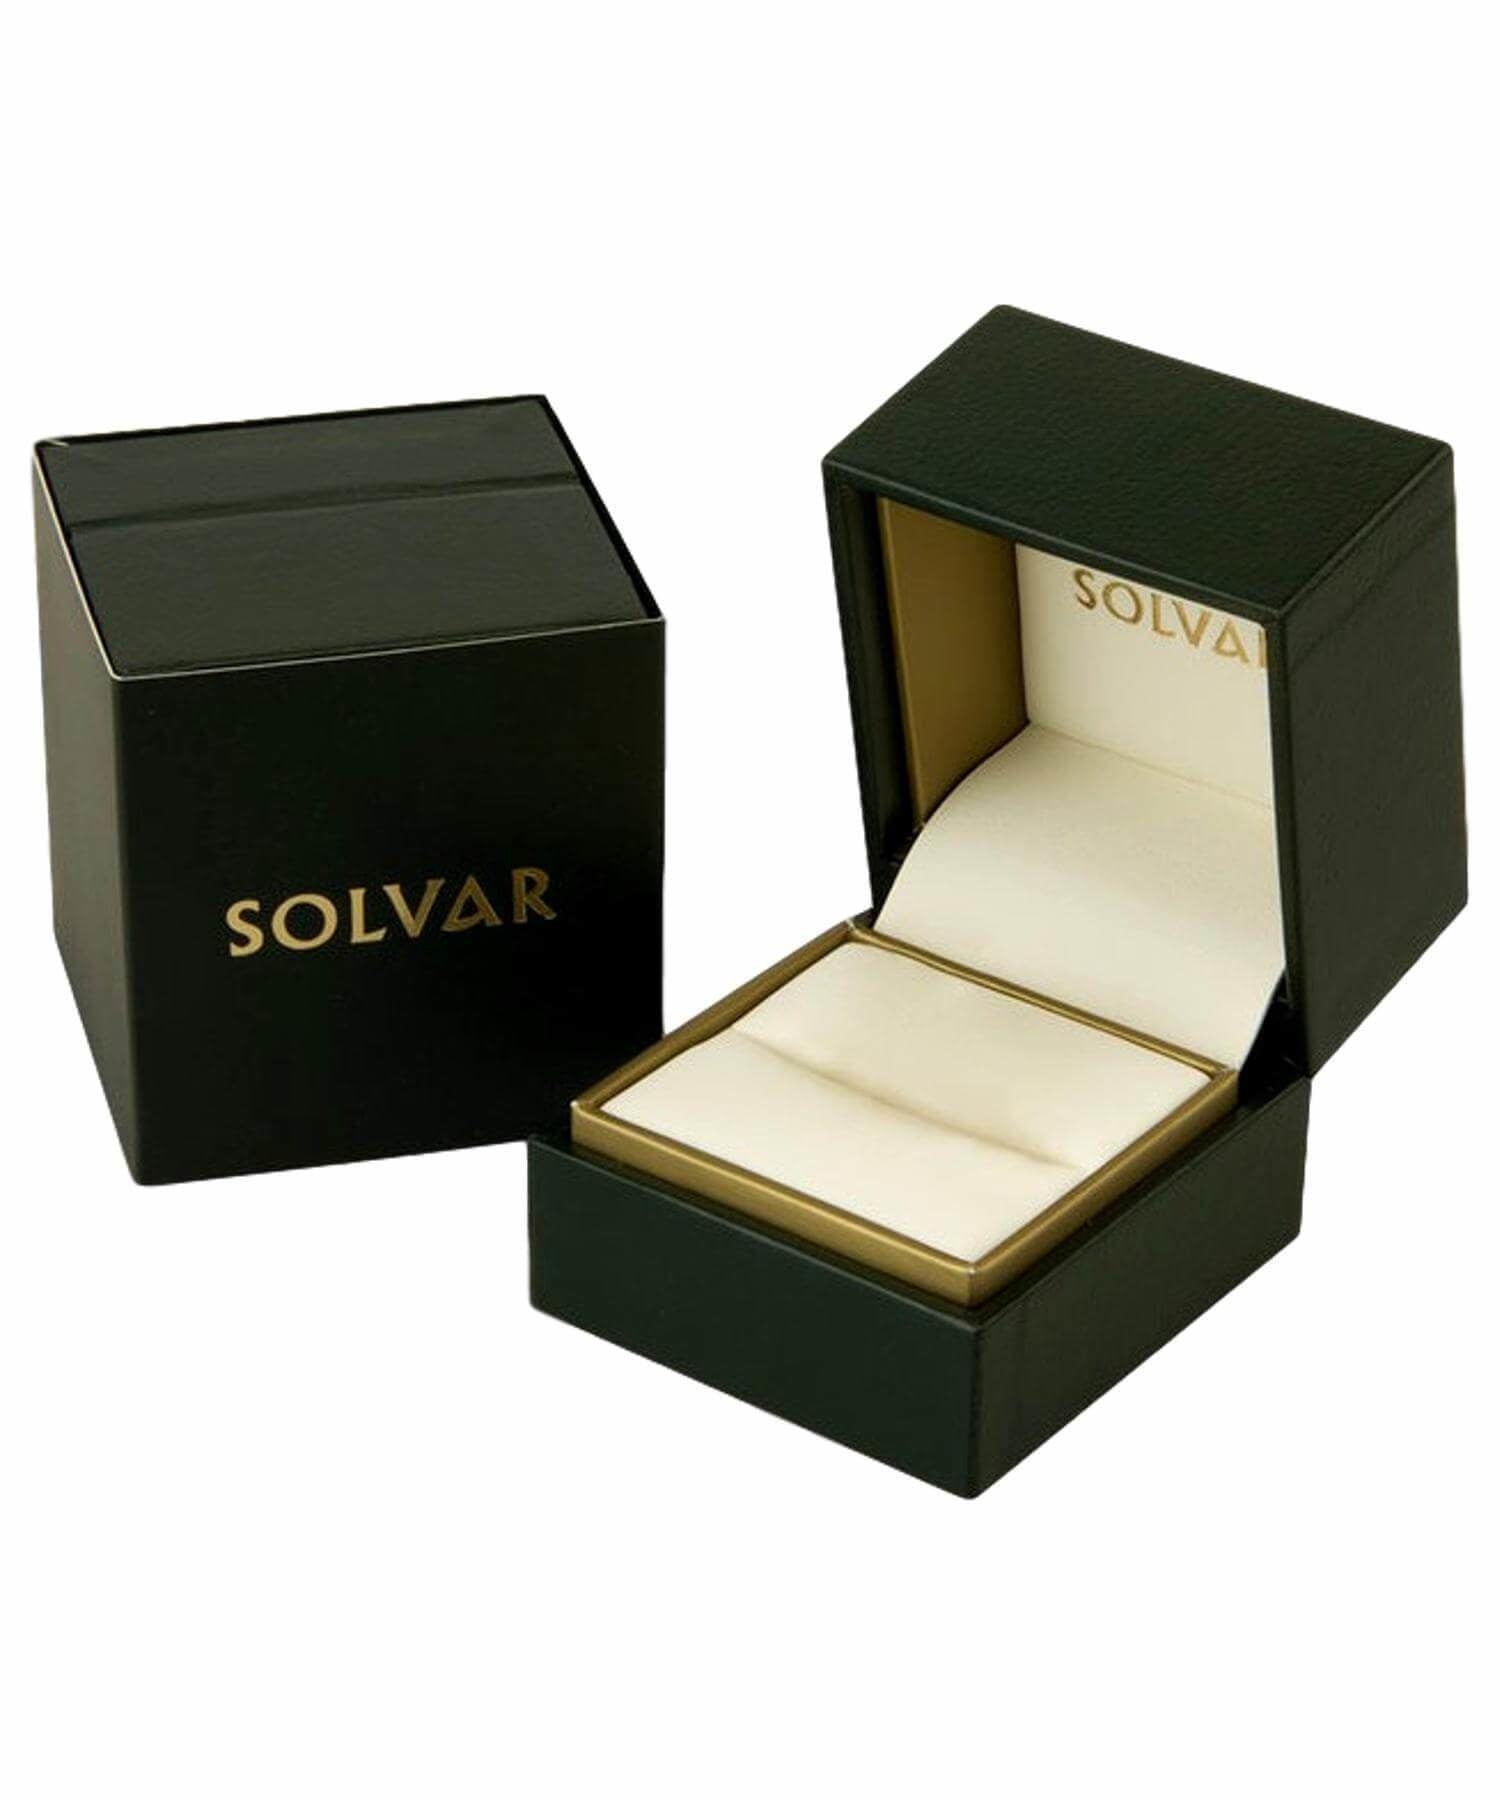 Gold Trinity Knot Ring - [Solvar] - Jewellery - Irish Gifts